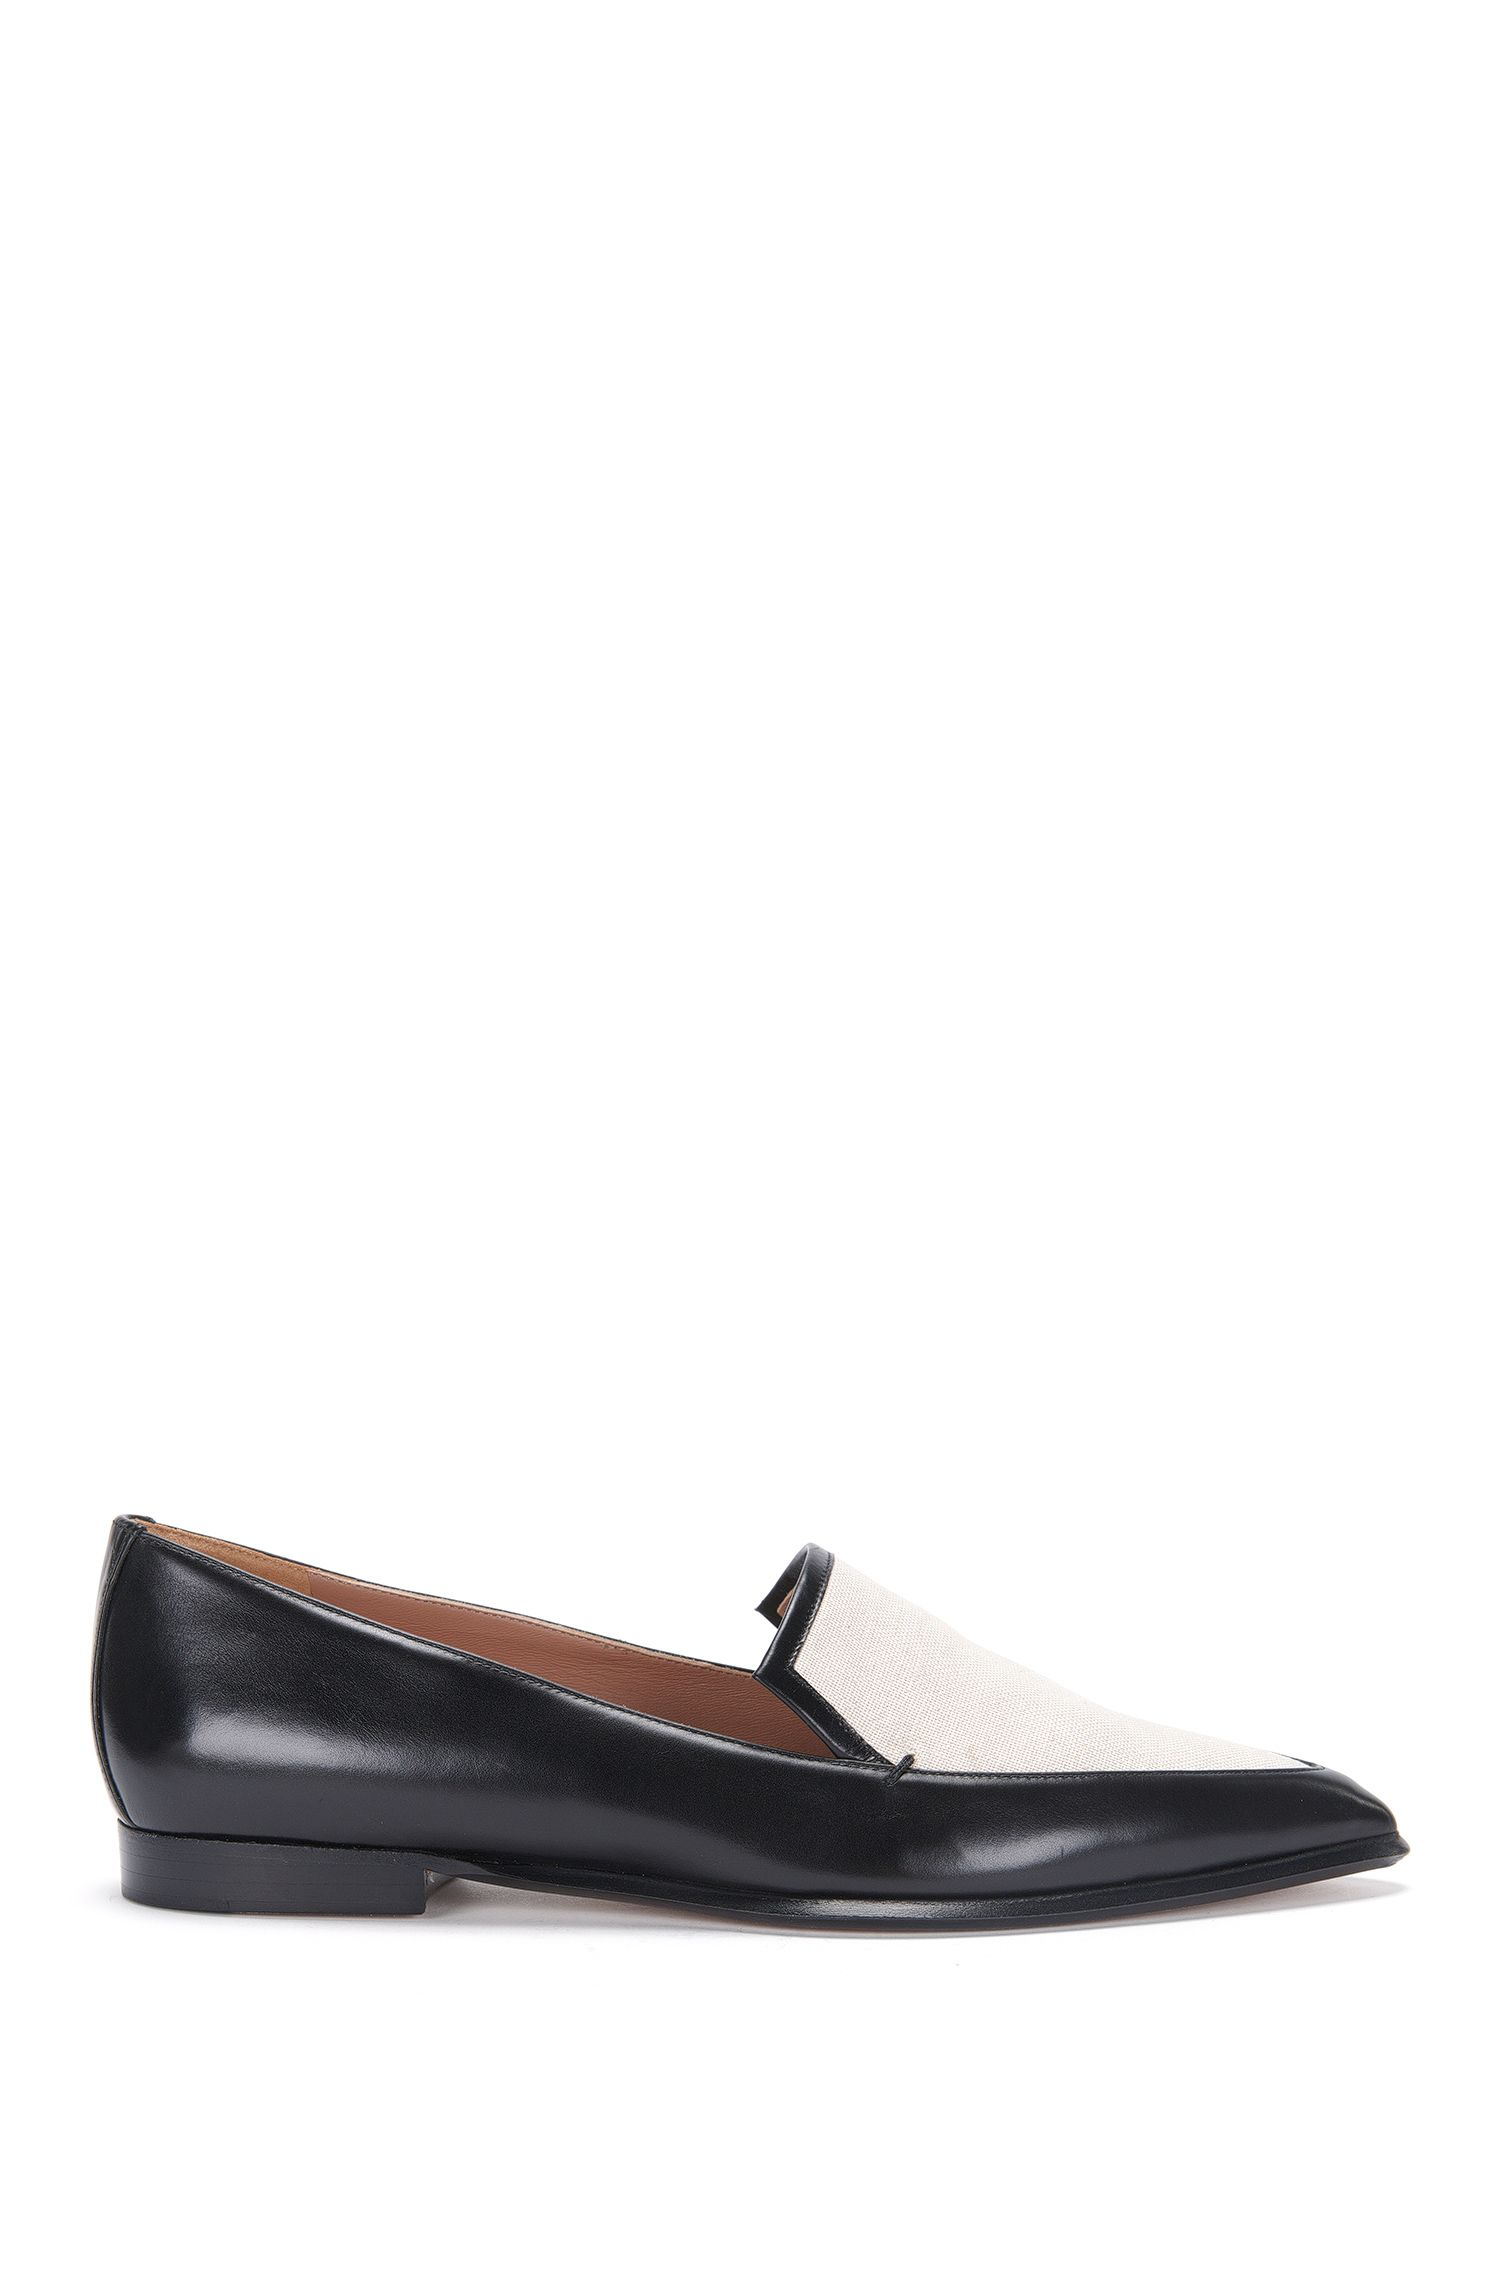 'Canvas Loafer' | Italian Calfskin Canvas Loafers